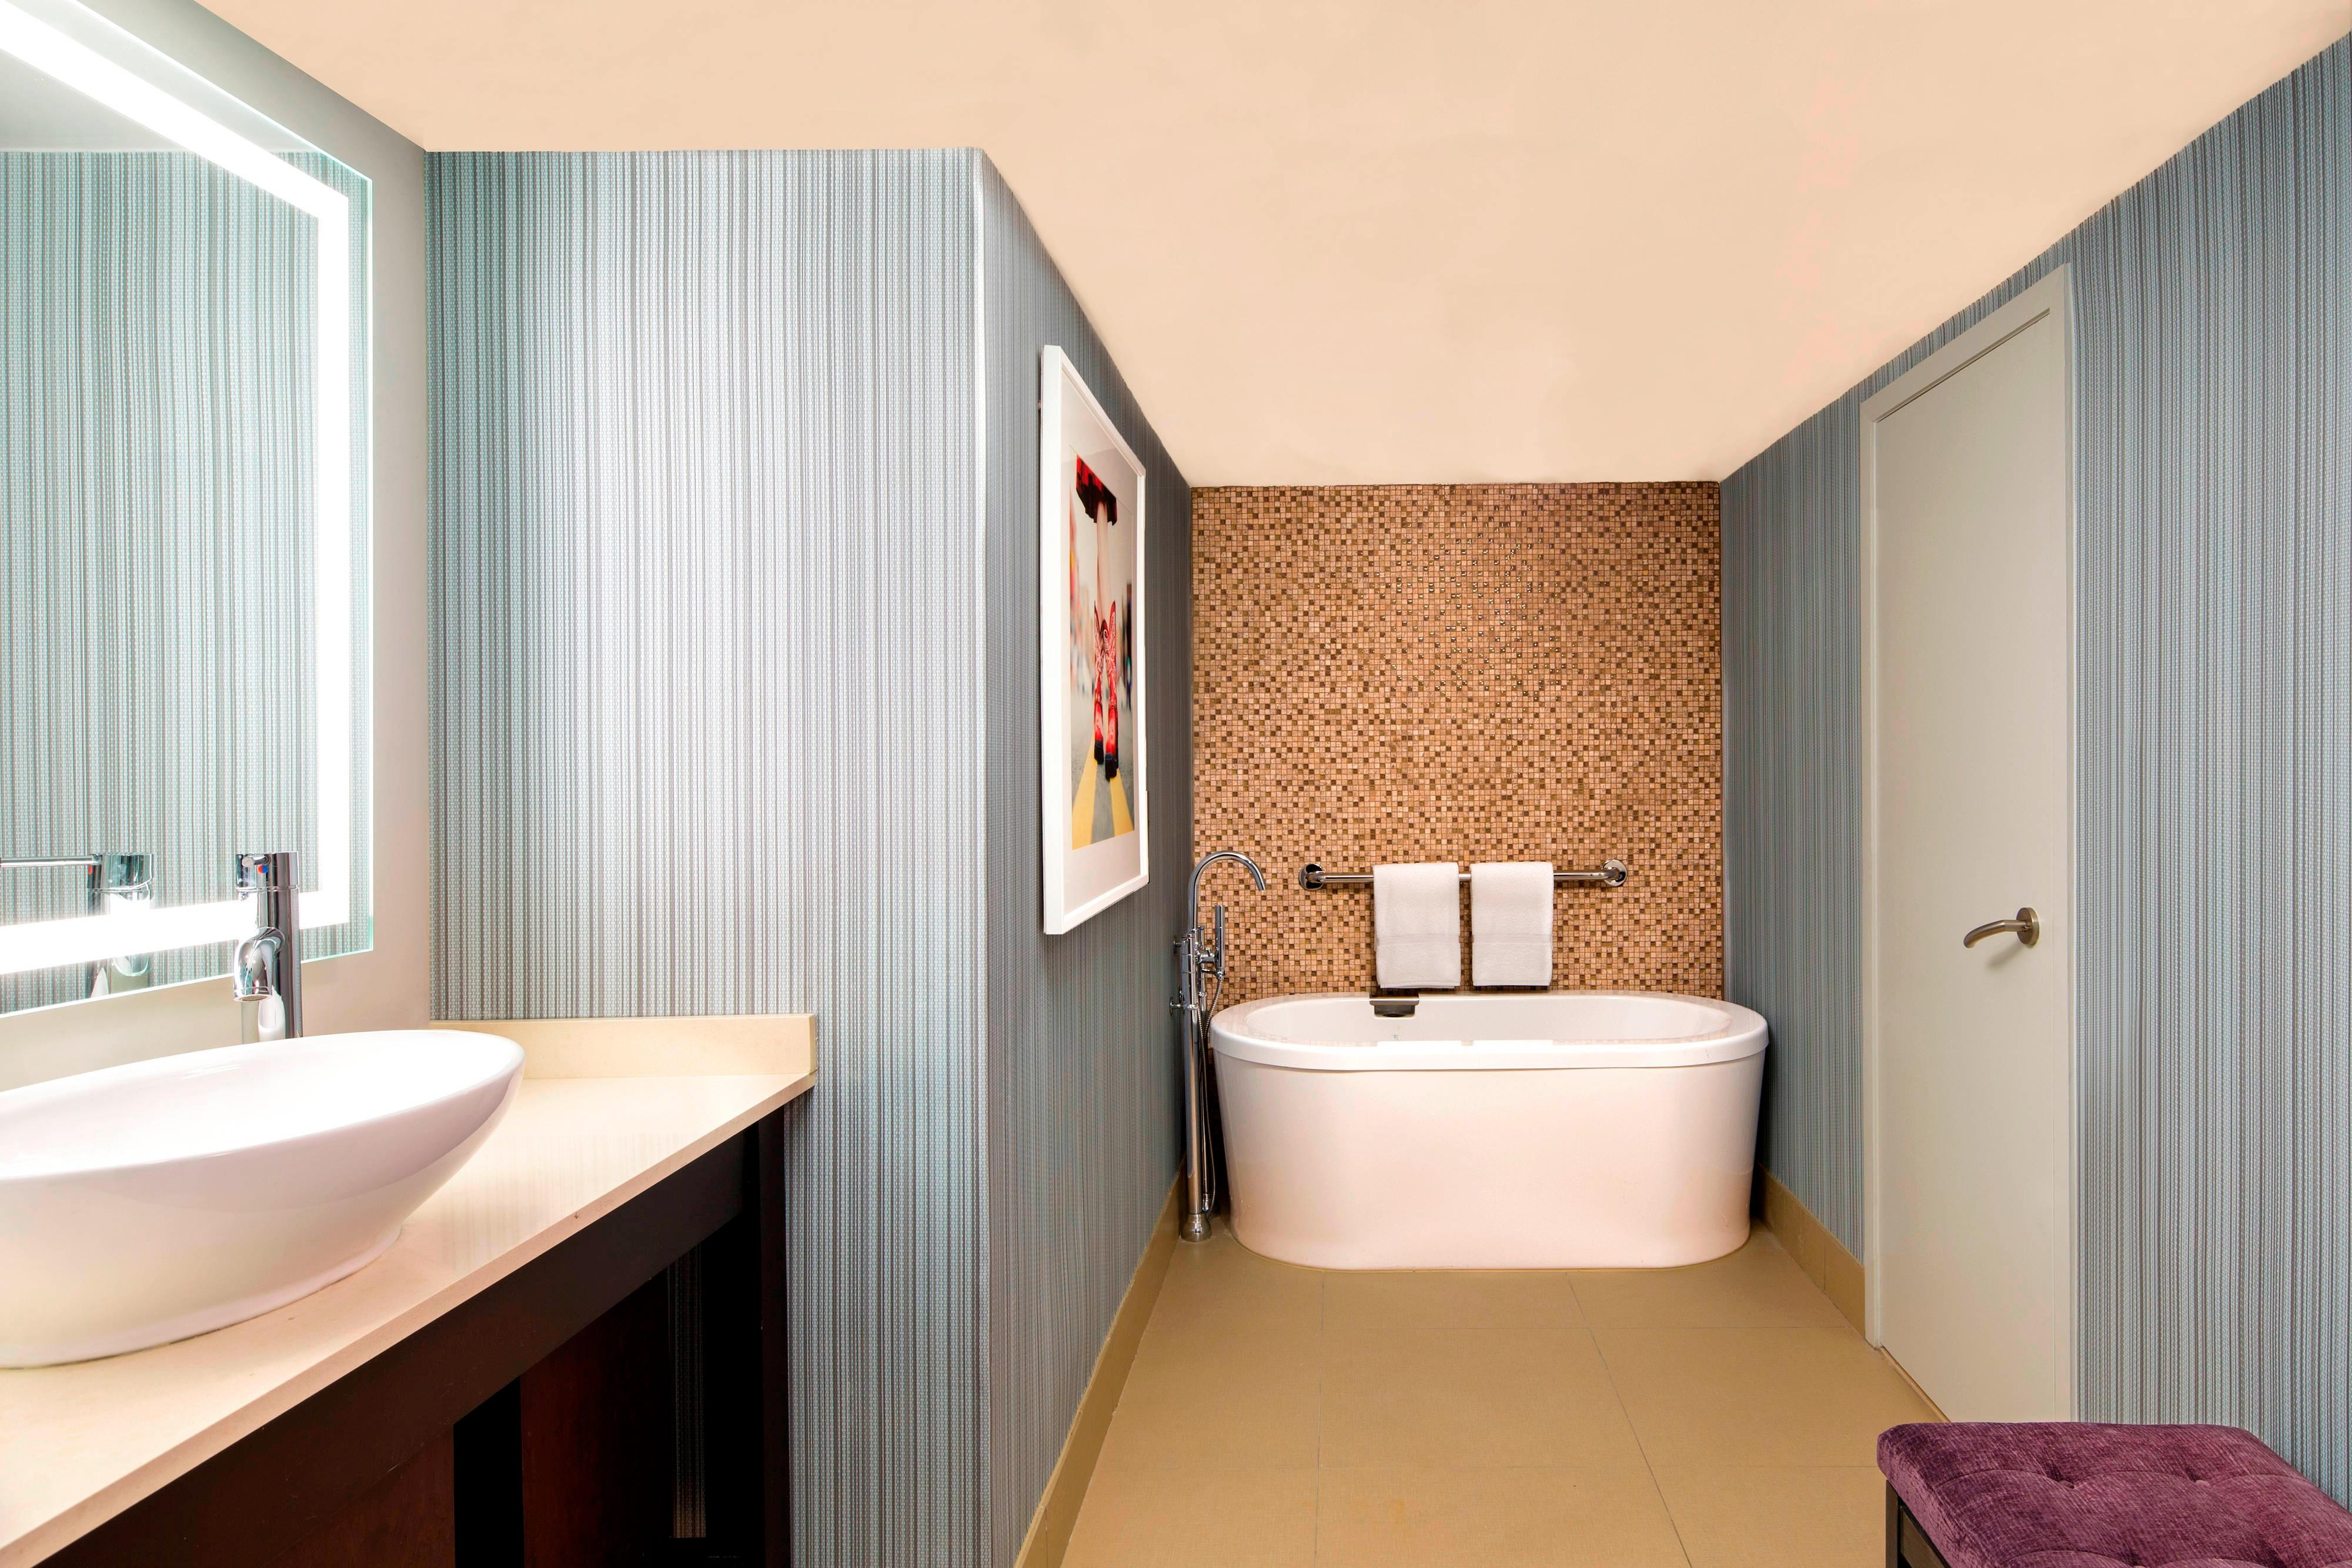 Governors Suite - Bathroom